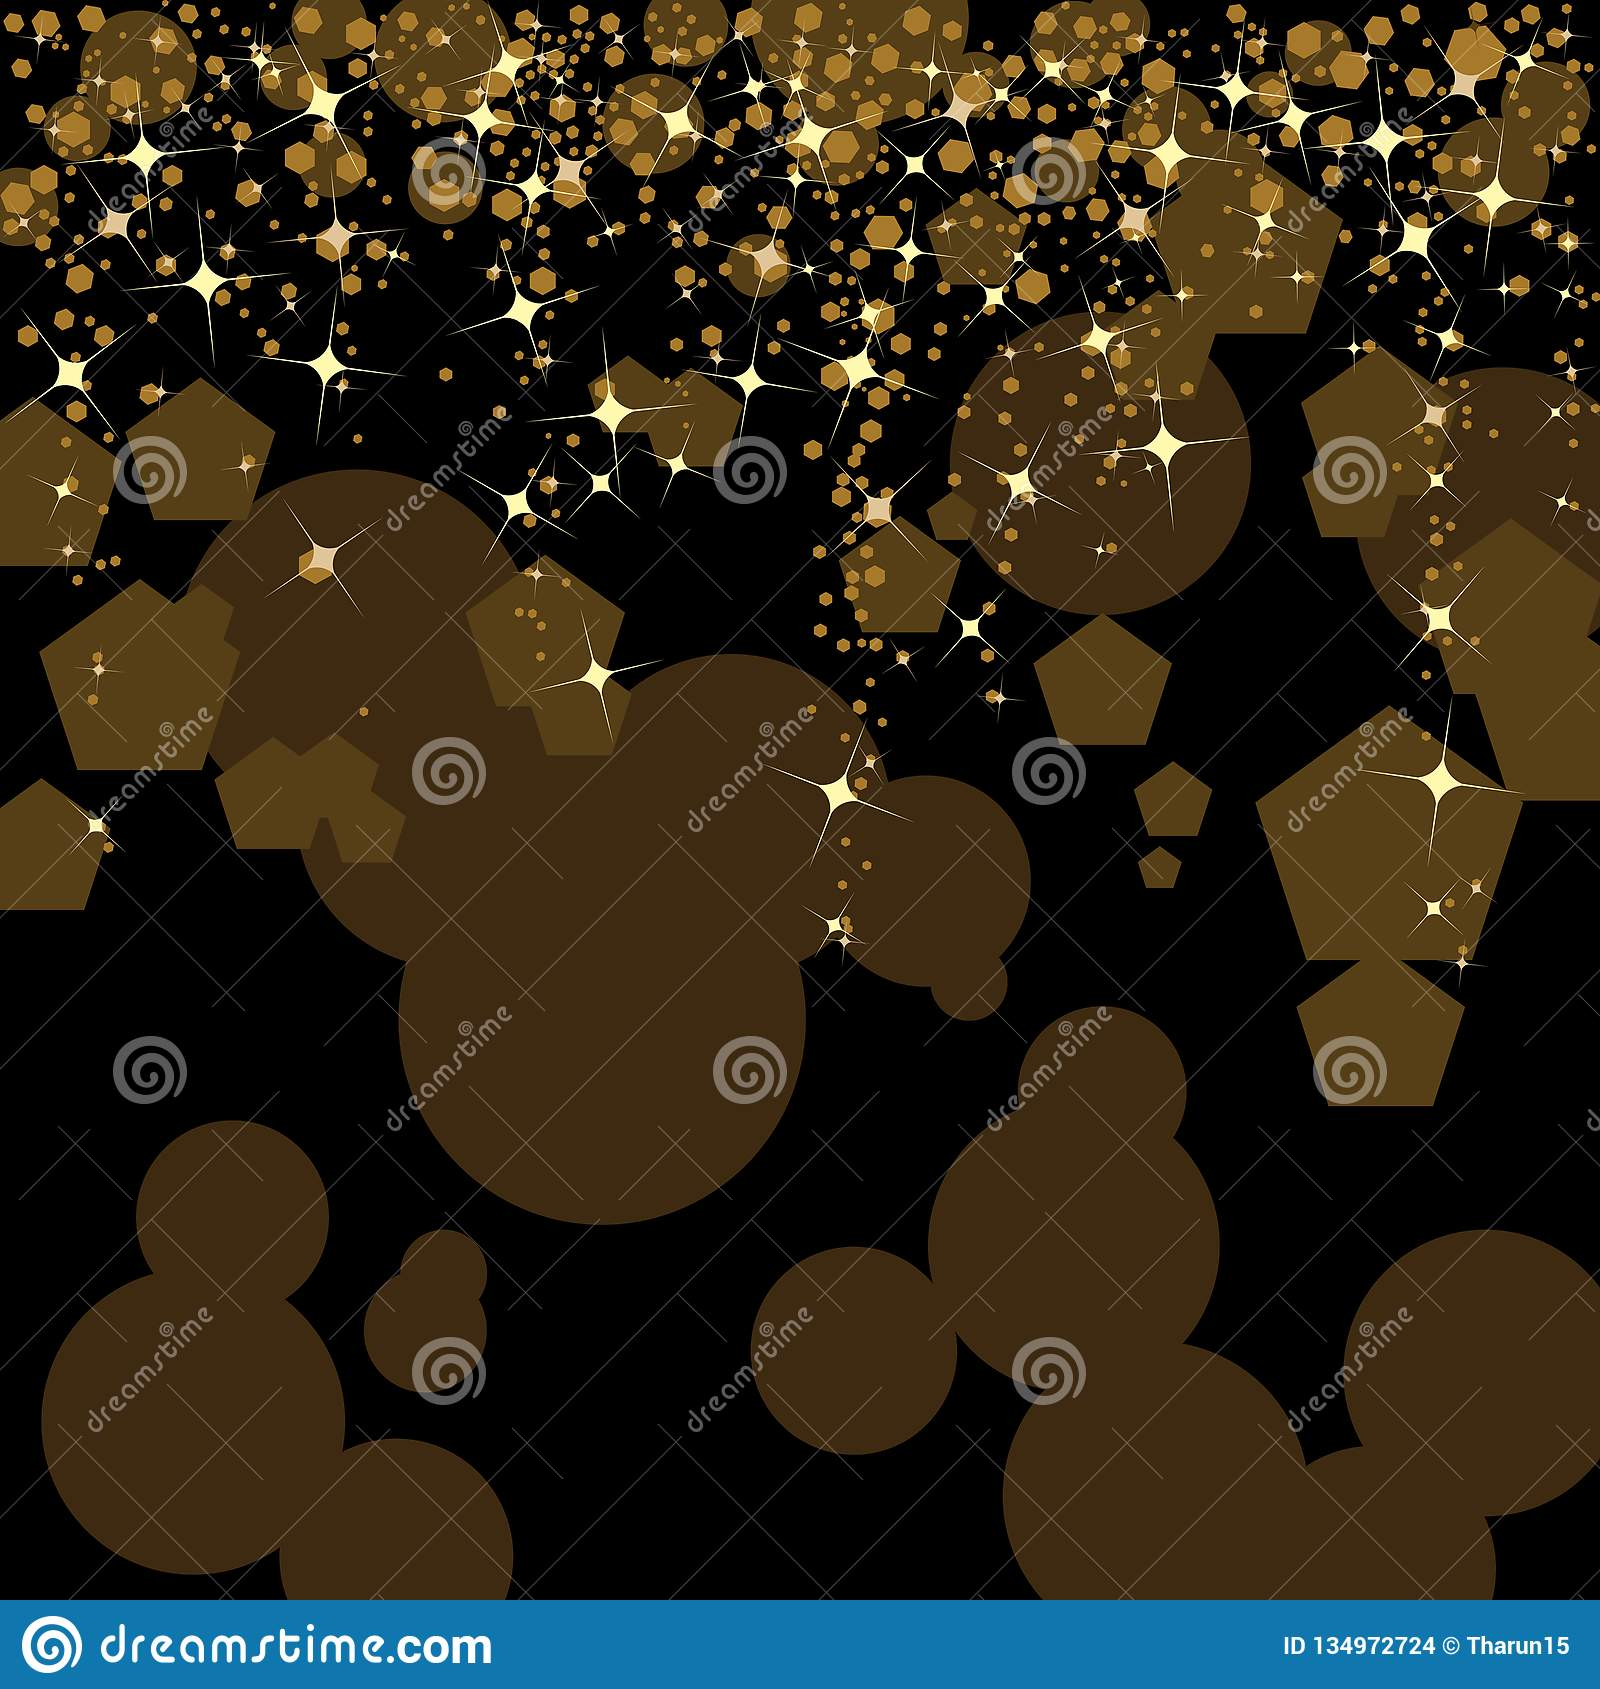 Black And Gold Abstract Background Designed With Stars And